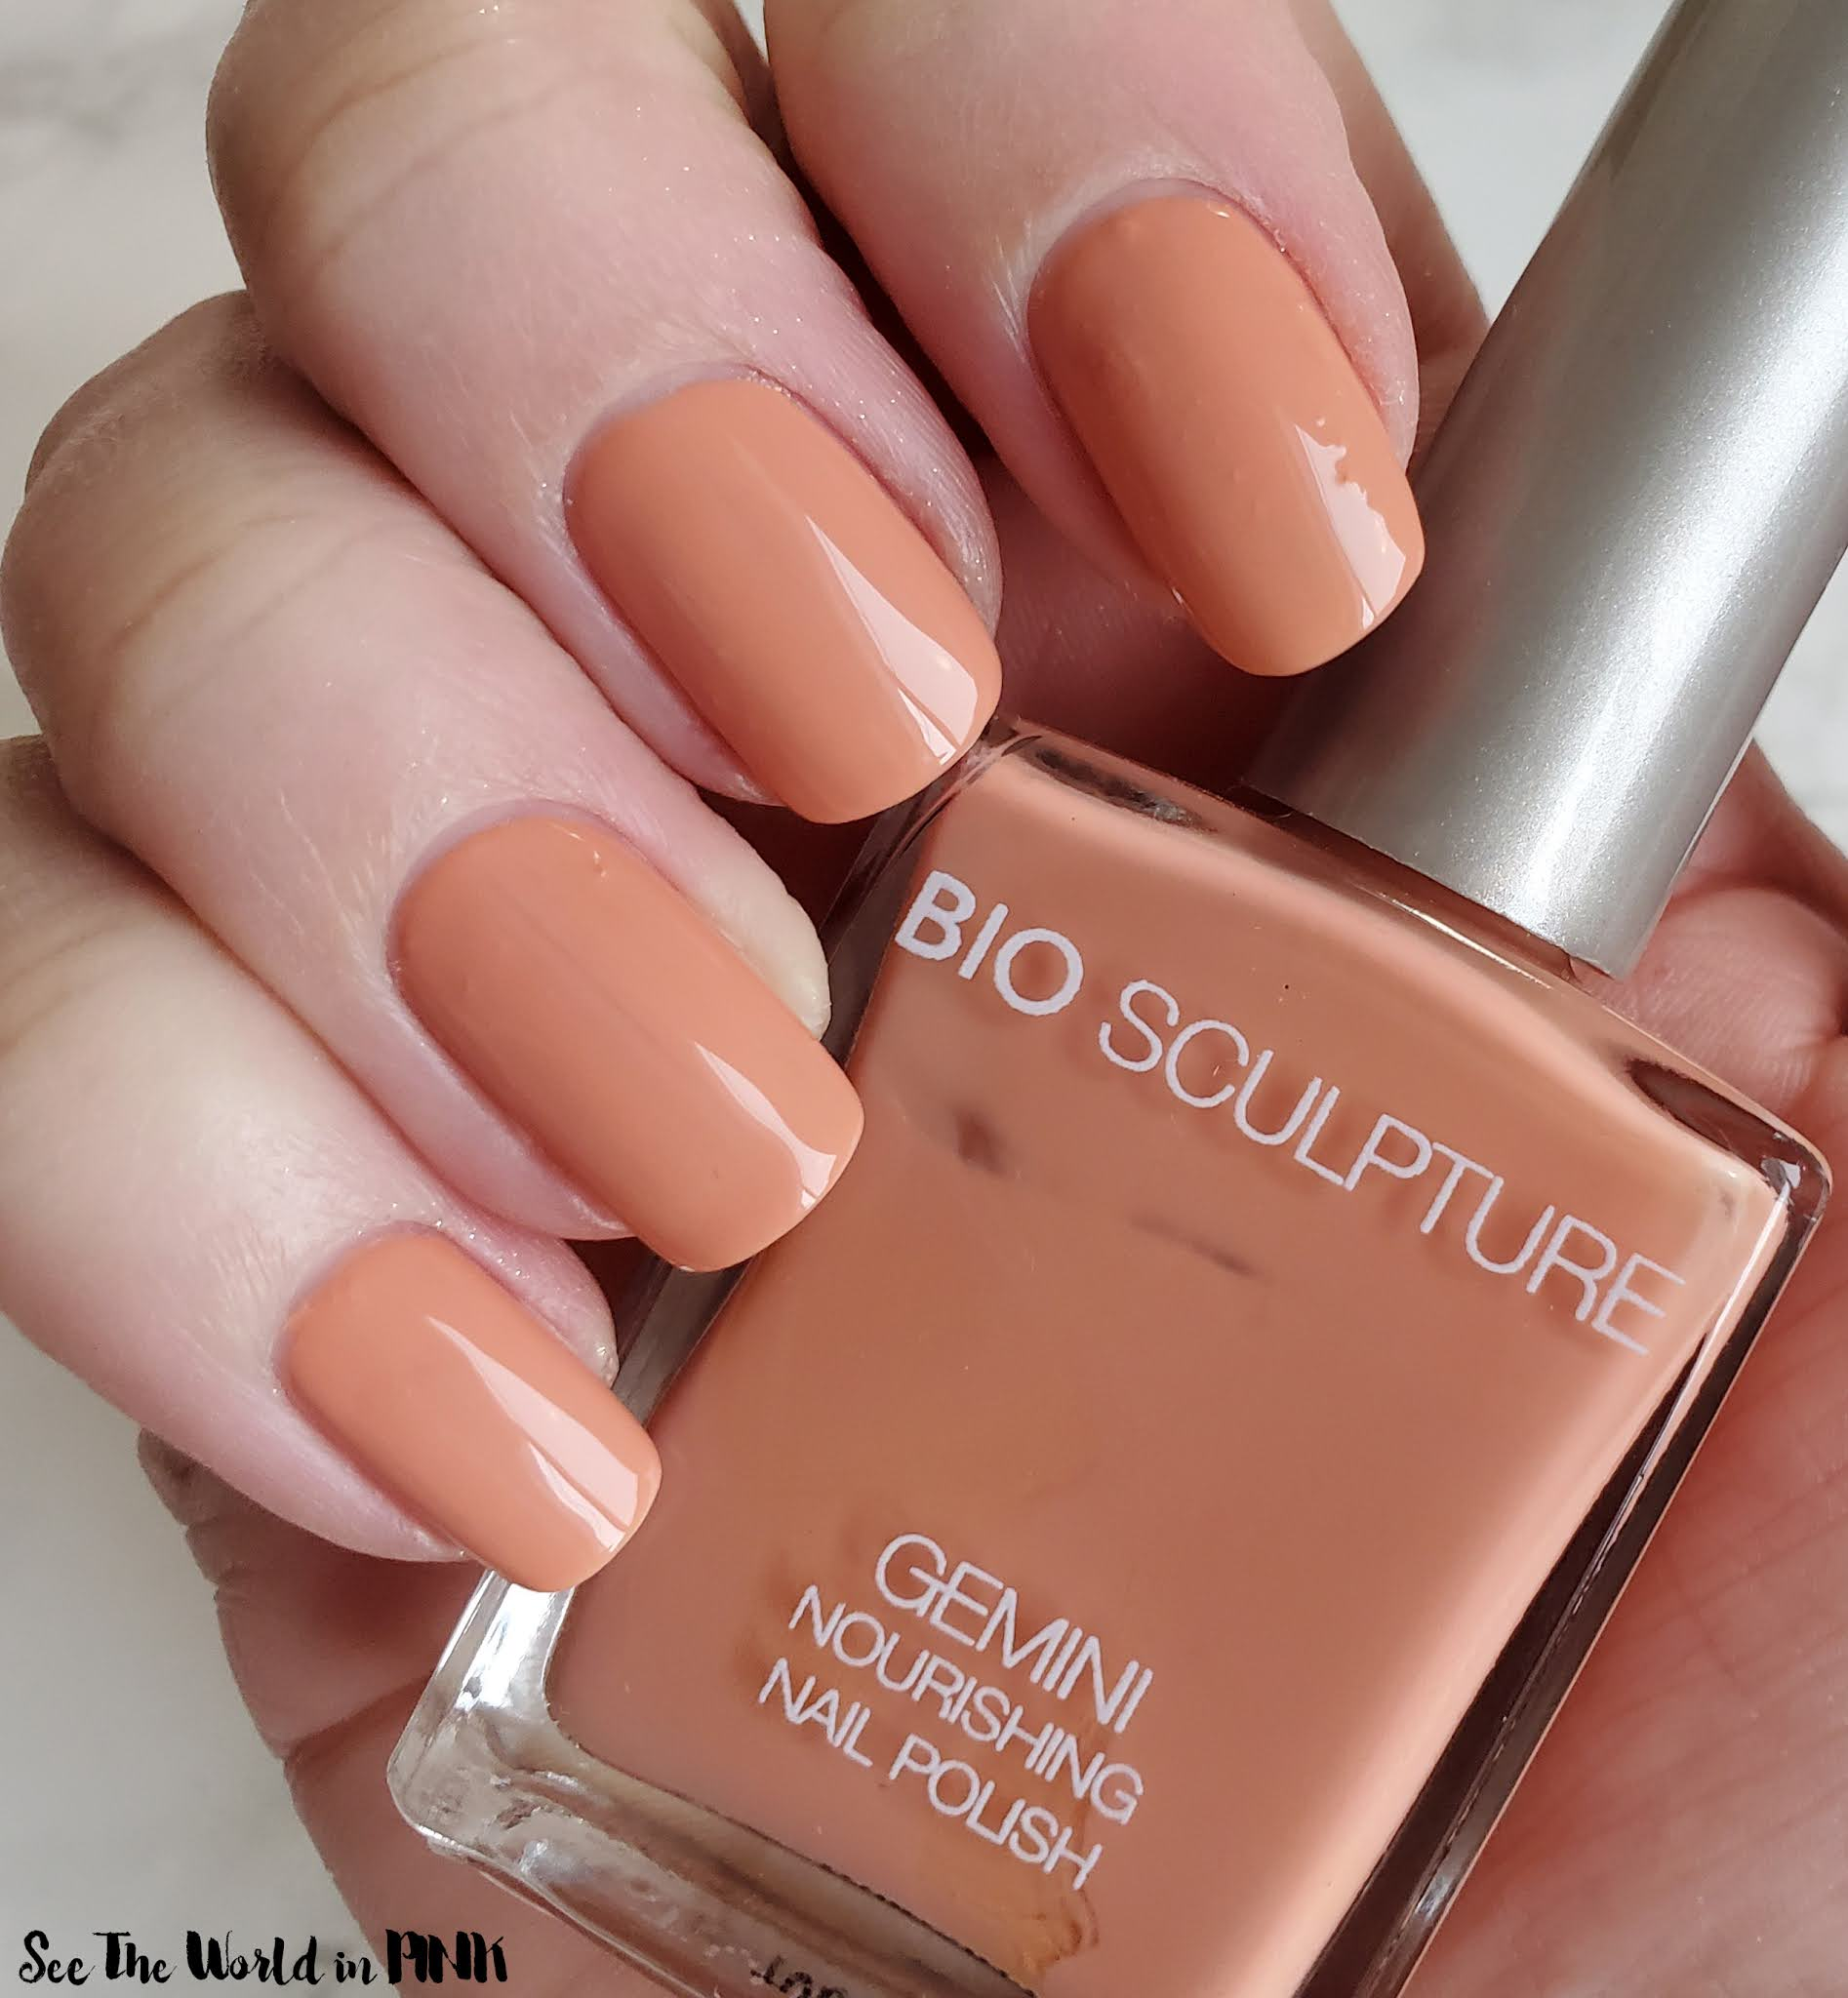 Manicure Monday - Bio Sculpture My Winter Garden Polish Collection Swatches